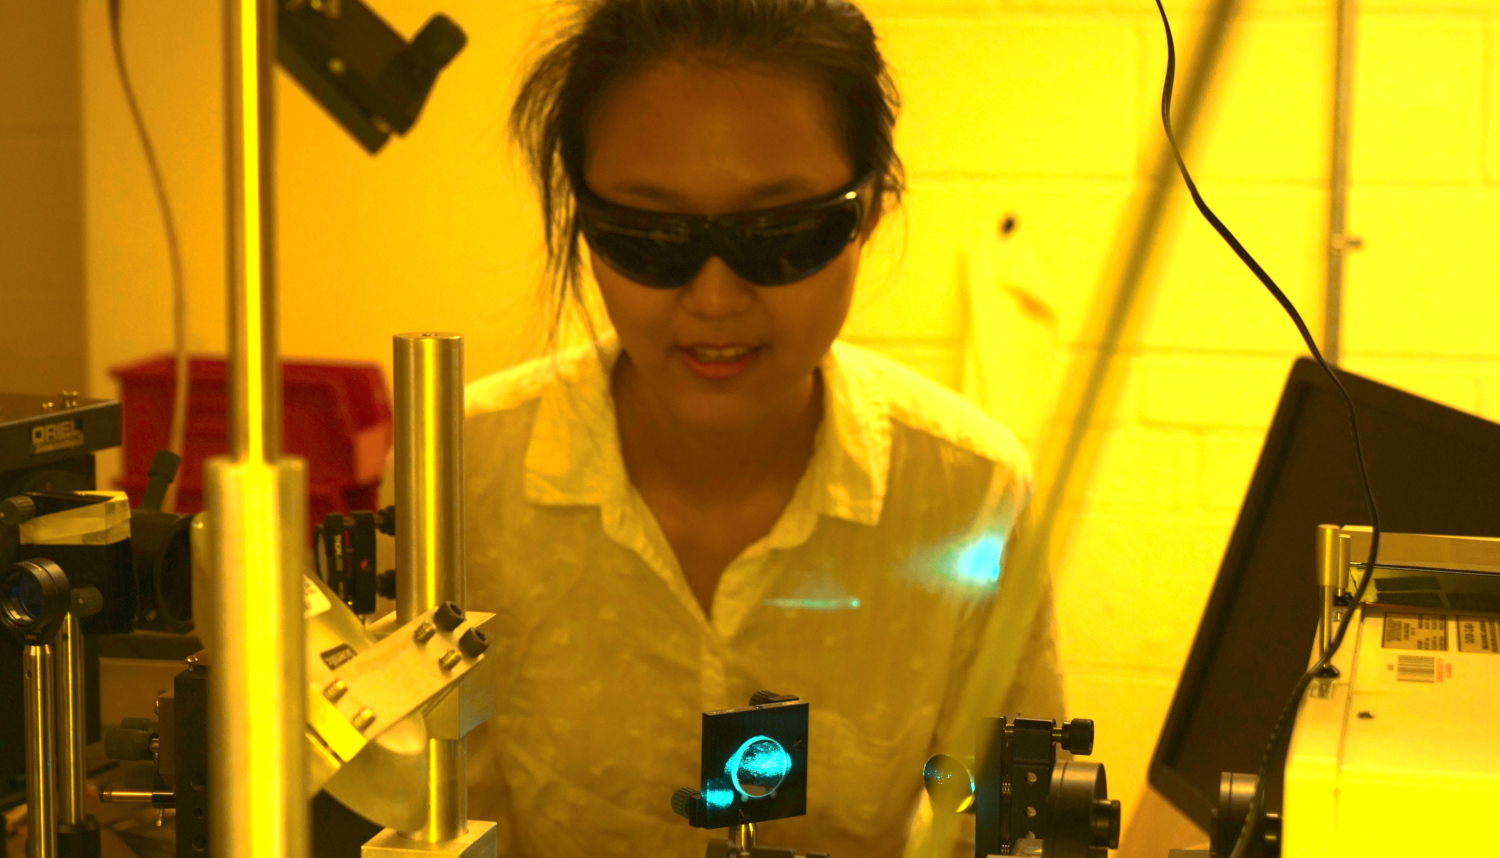 Graduate Reasearch in Dr. Lim's Lab